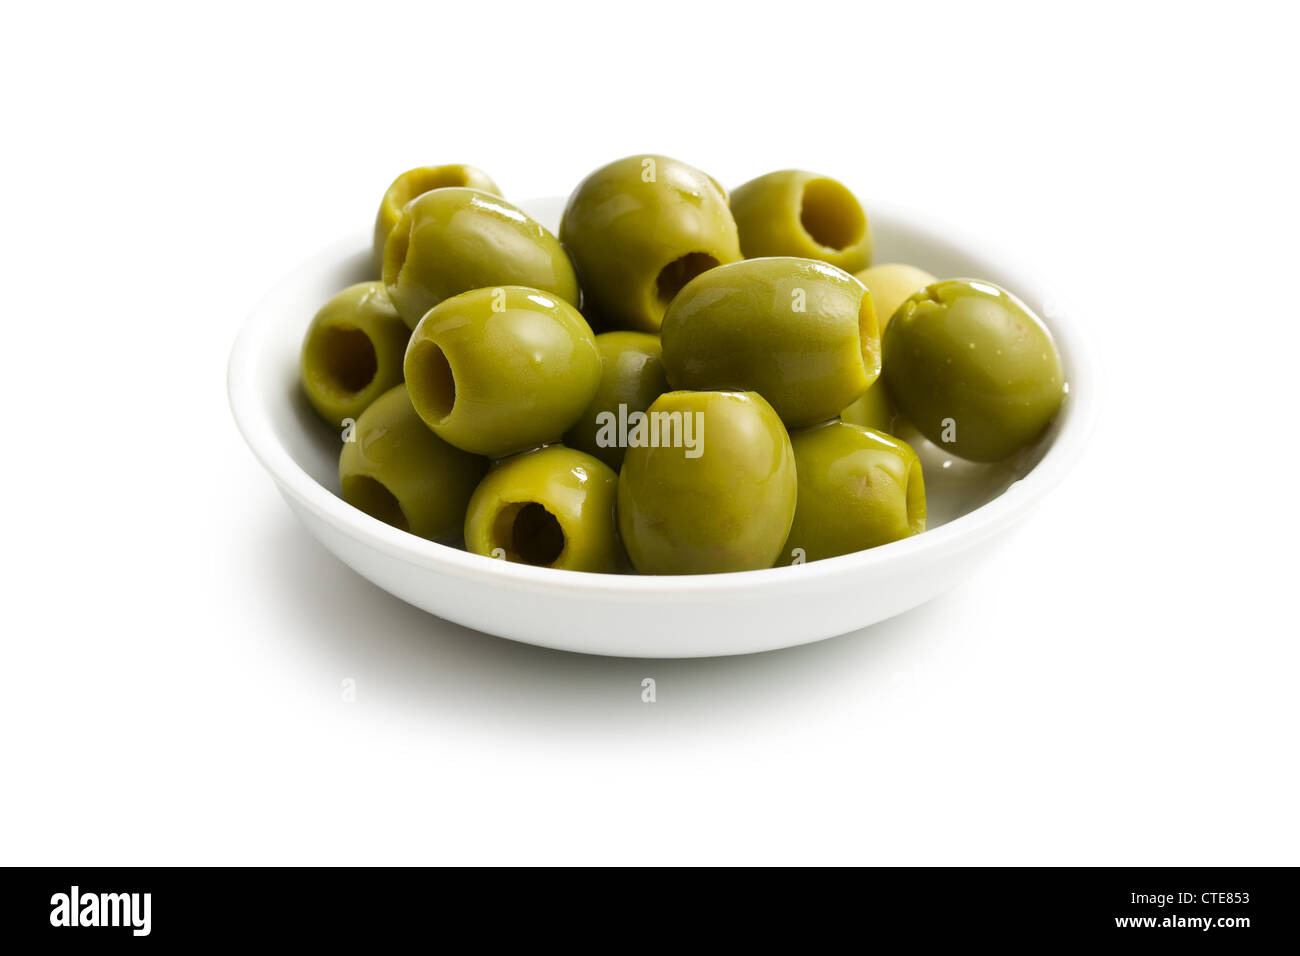 green olives in white bowl on white background - Stock Image